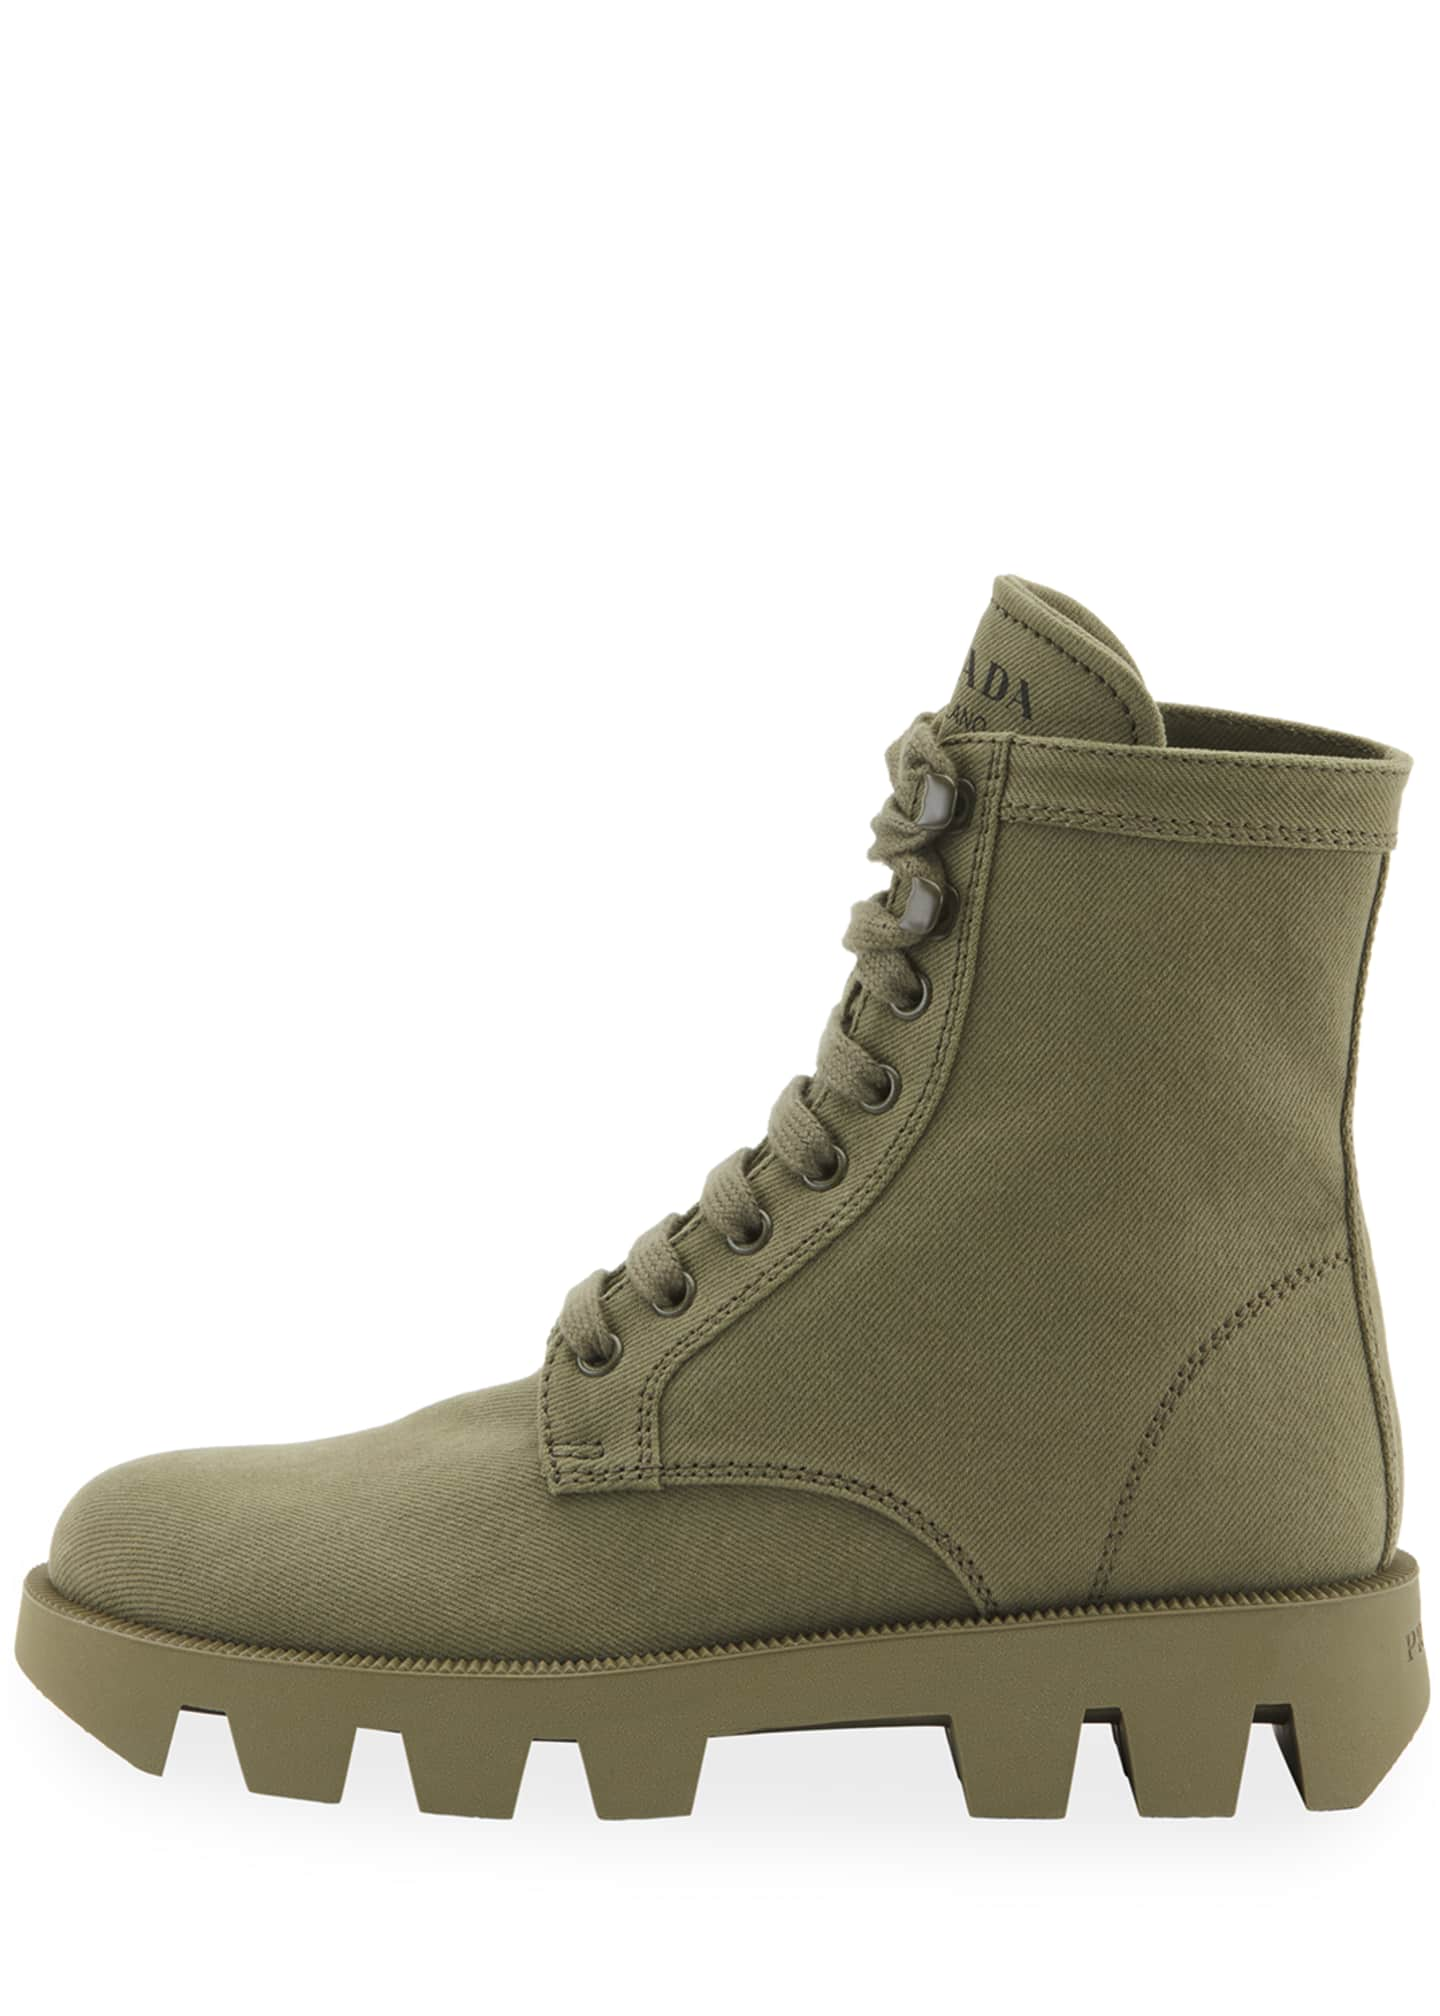 Image 2 of 2: Lug-Sole Canvas Combat Boots